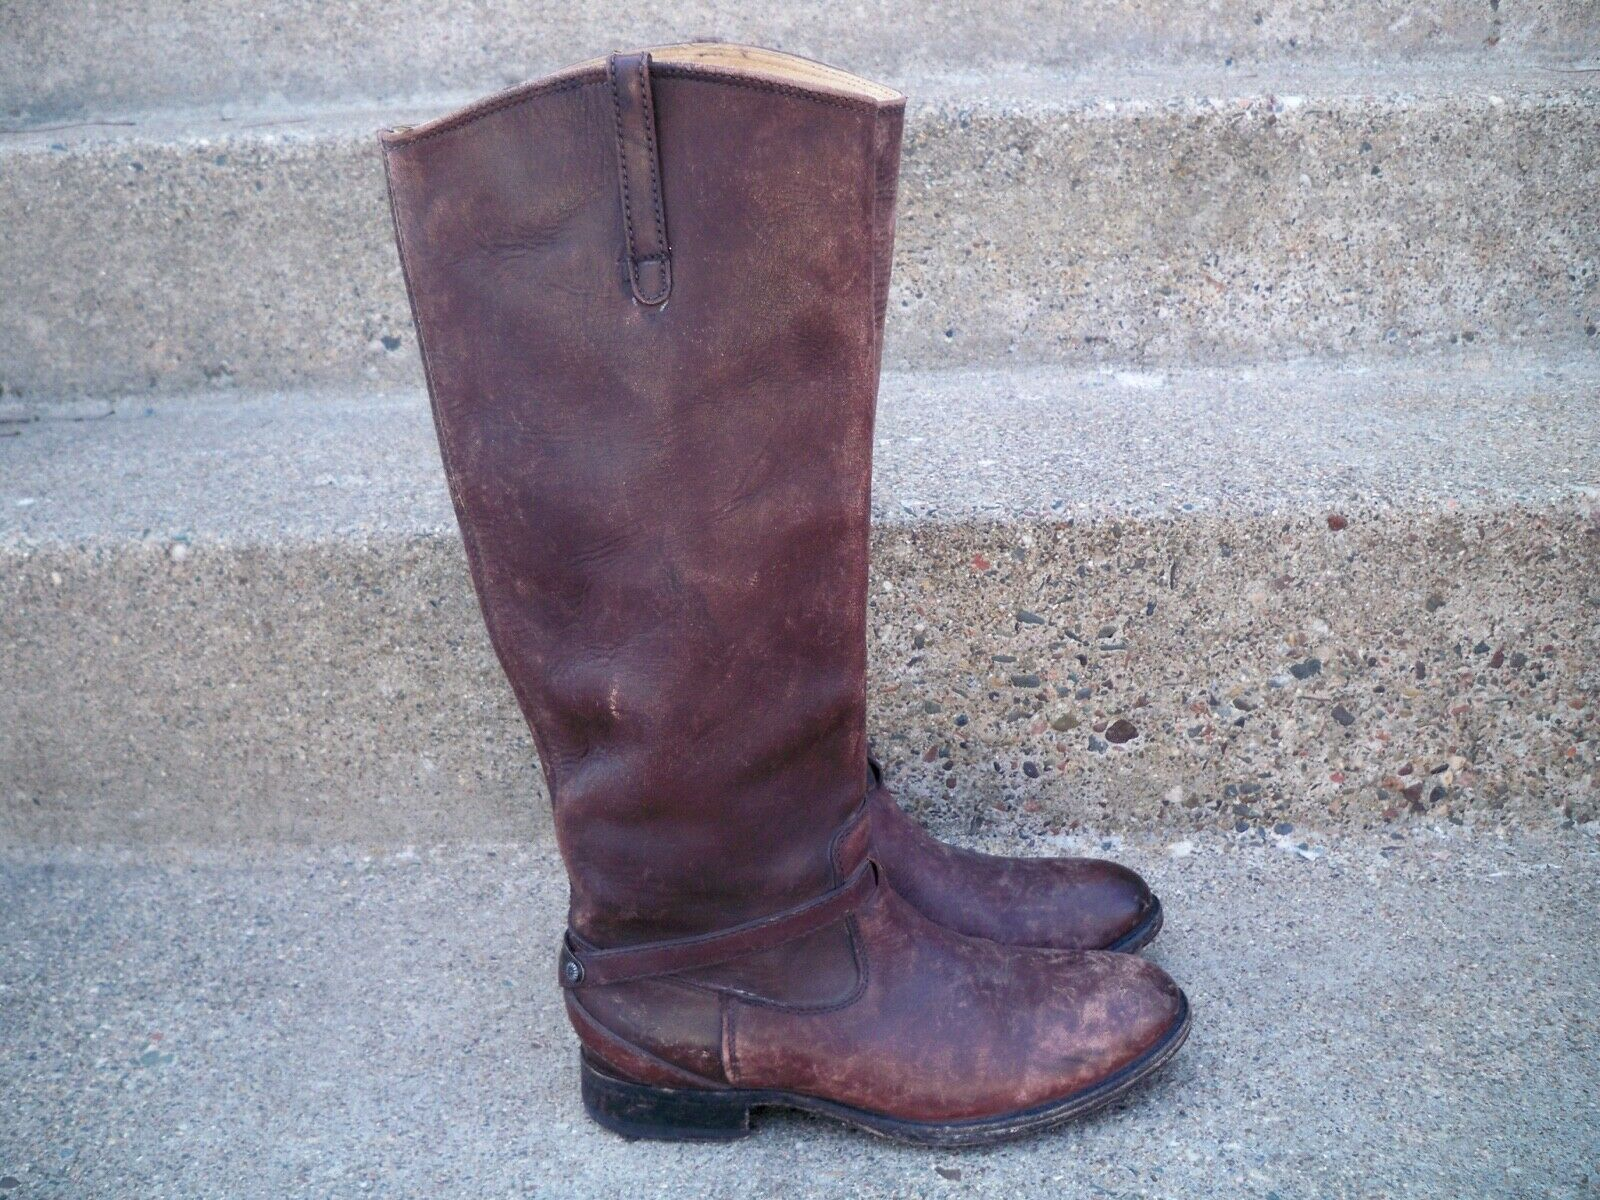 FRYE Women's Lindsay Plate Knee-High Riding Tall Leather Motorcycle Boots Boots Boots Size 6 0d3aa9